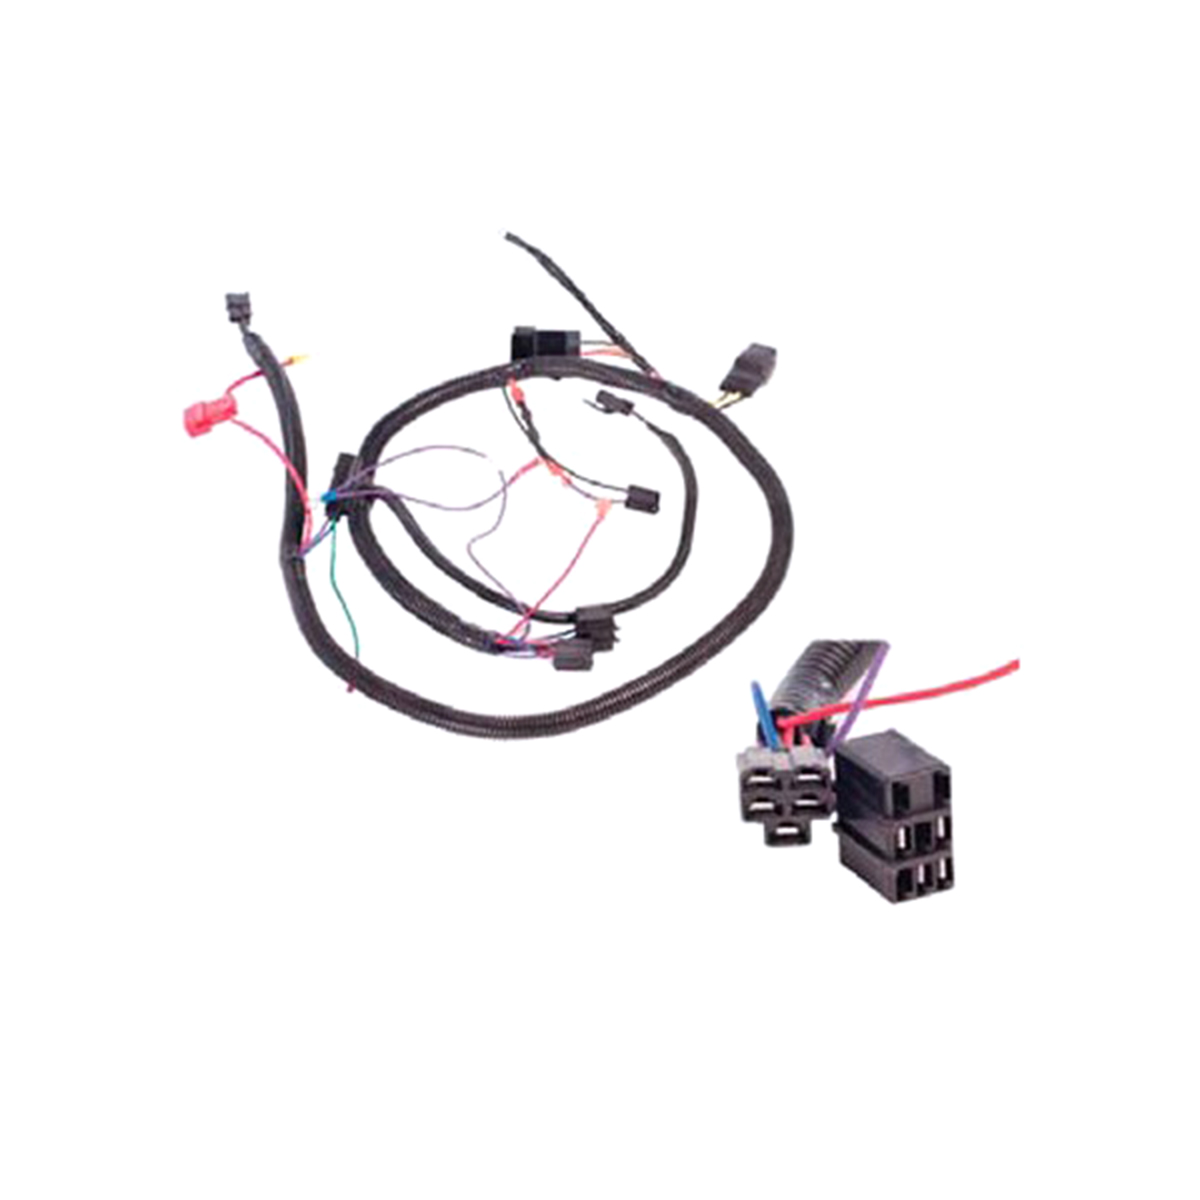 500073 500073 dixie chopper kohler 40hp wiring harness dixie chopper wiring diagram at n-0.co